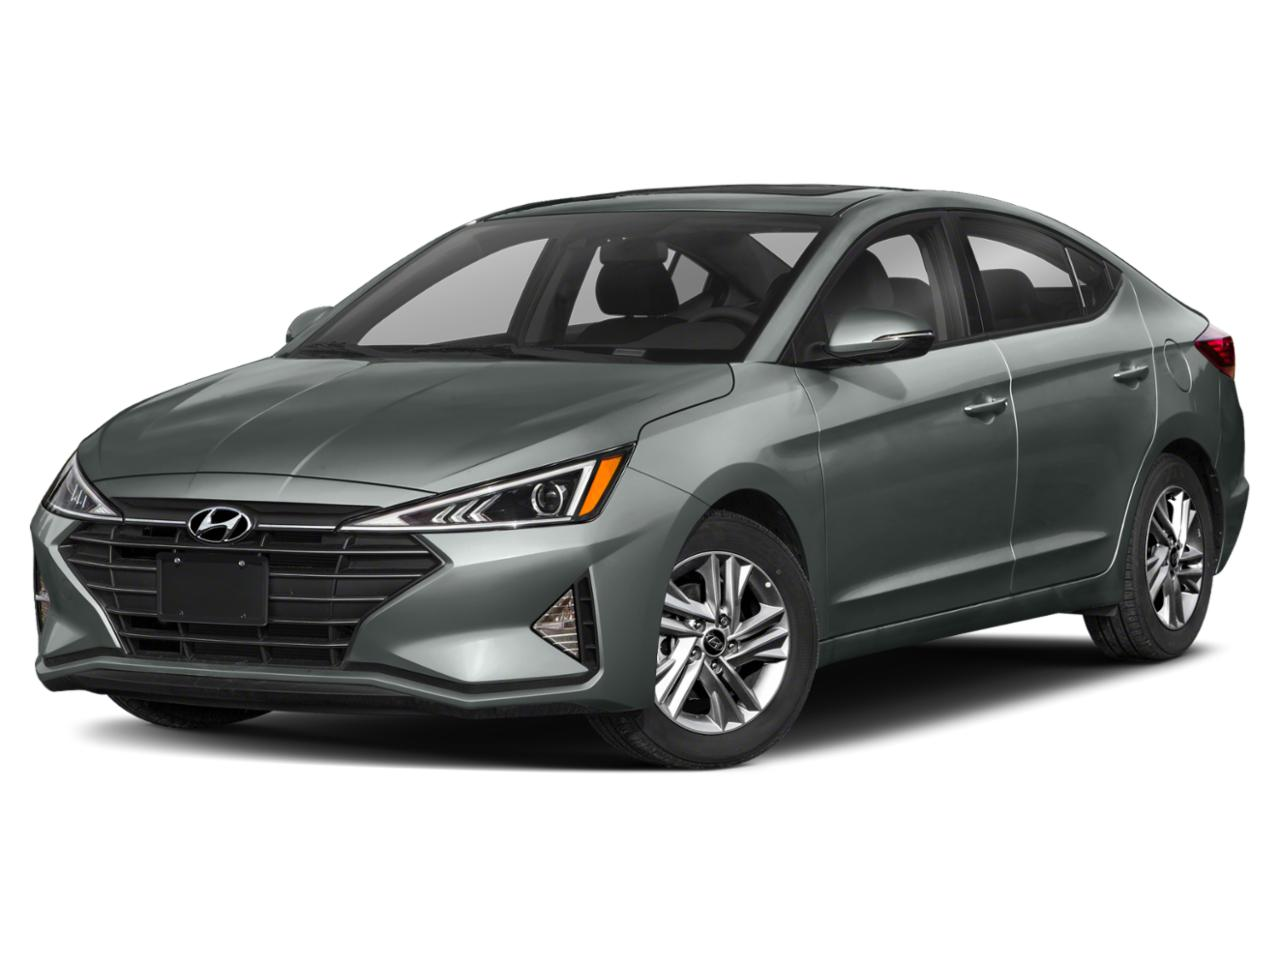 2020 Hyundai Elantra Vehicle Photo in Spokane, WA 99207